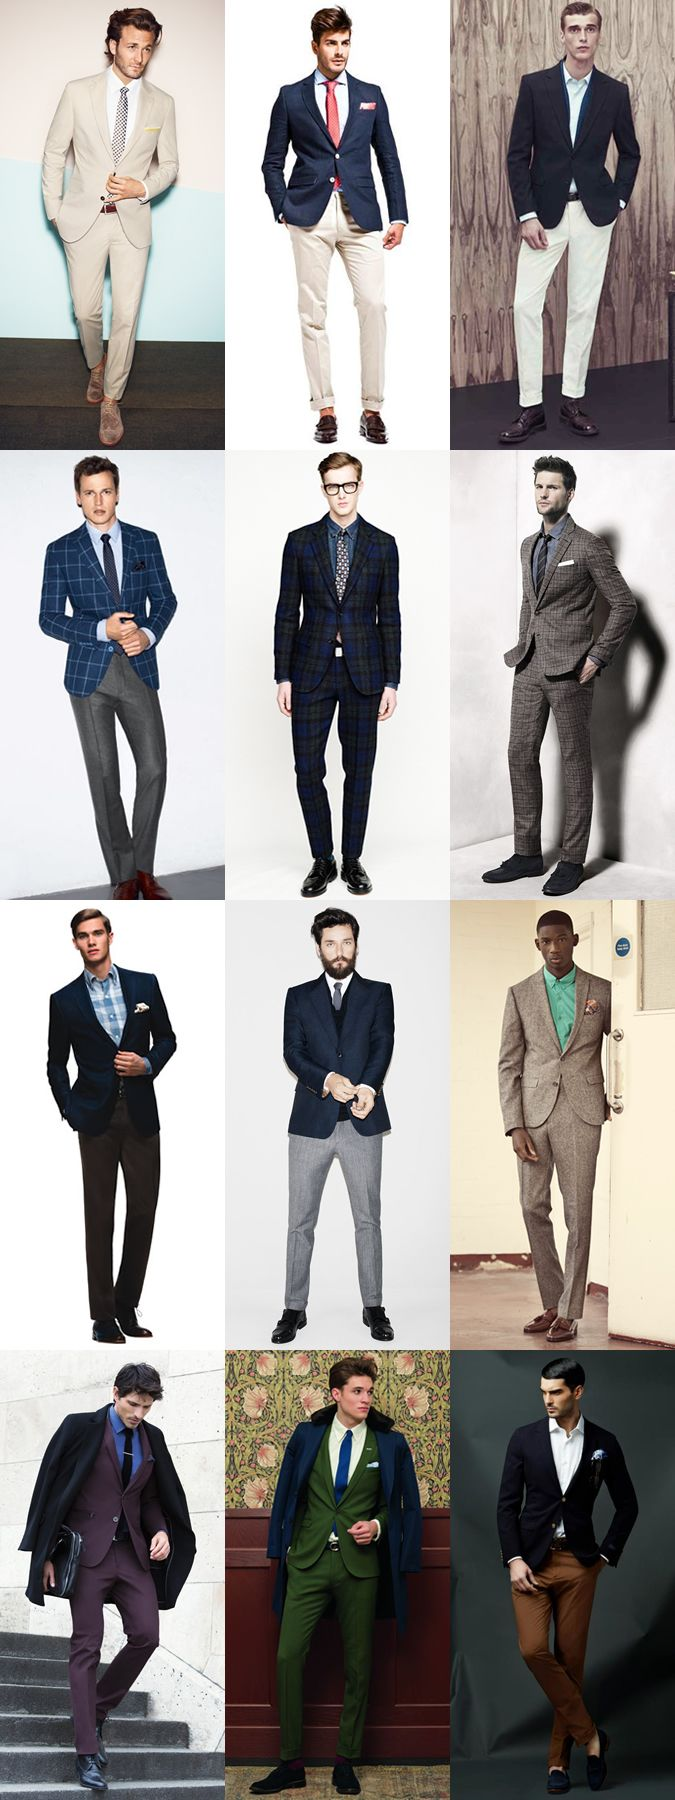 Great examples of men in perfect-fitting suits! I mean, who doesn't love a man in a great suit! I do! :D